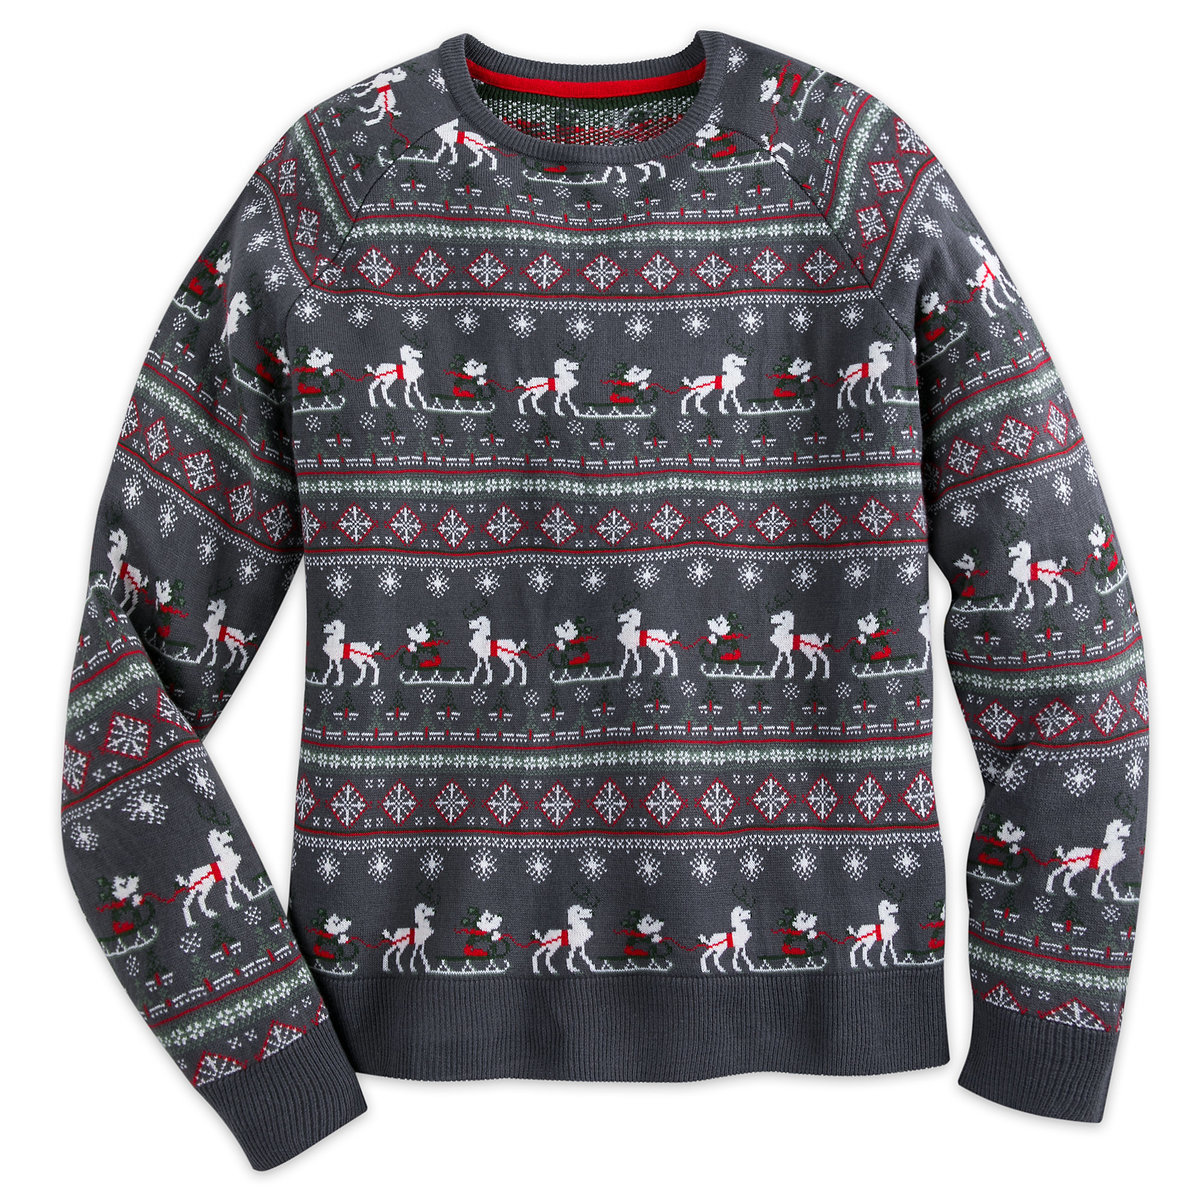 04 Ugly Men Christmas Sweater.jpg